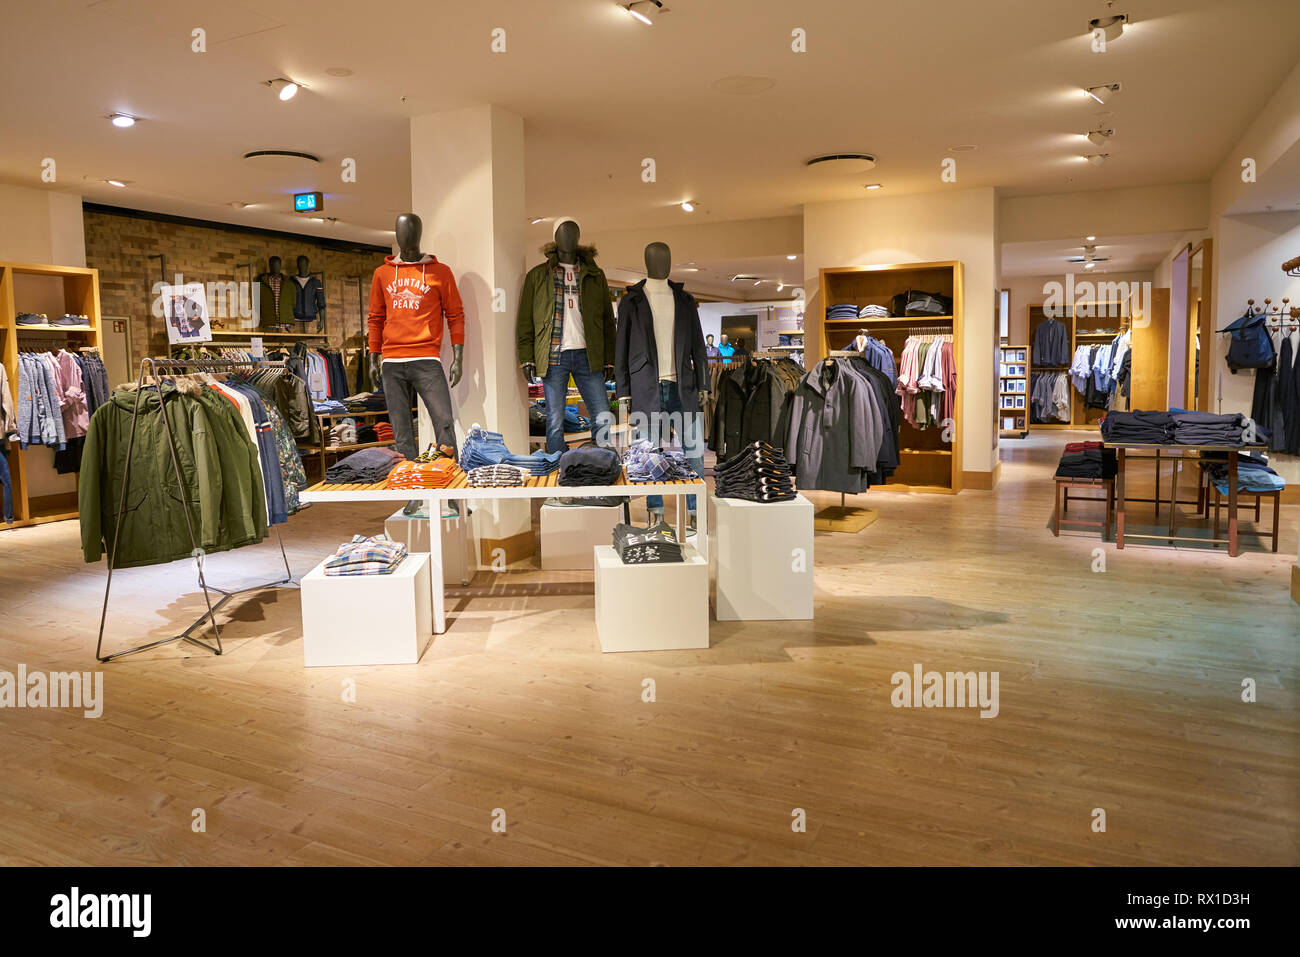 Esprit Shop Esprit Shop Stock Photos Esprit Shop Stock Images Page 2 Alamy